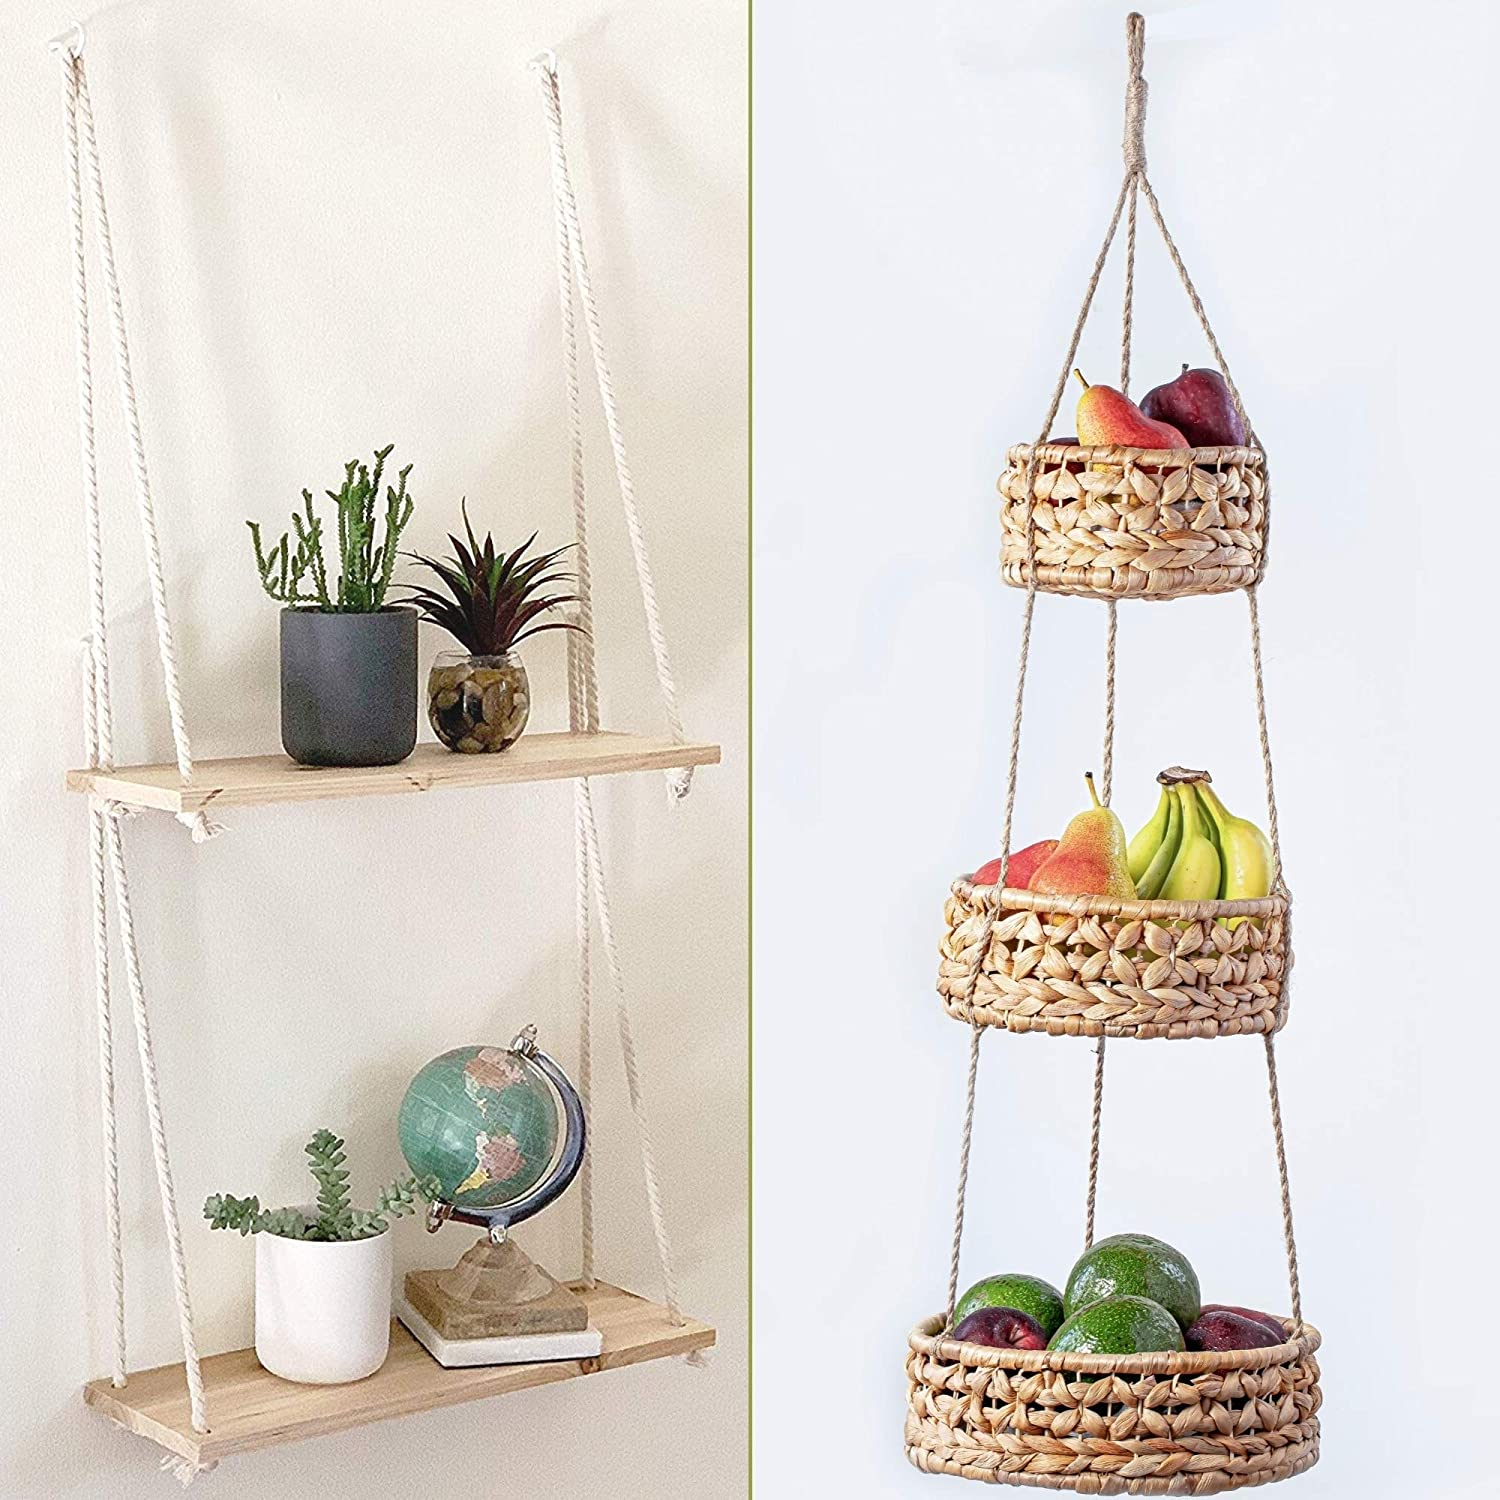 Base Roots Natural Woven Seagrass Wicker Baskets & Handcrafted Wooden Wall Shelf Set | Storage Organizer | Plant Holder | Handmade Modern Boho Home Decor | Countertop Space Saver for Fruits or Vegetab